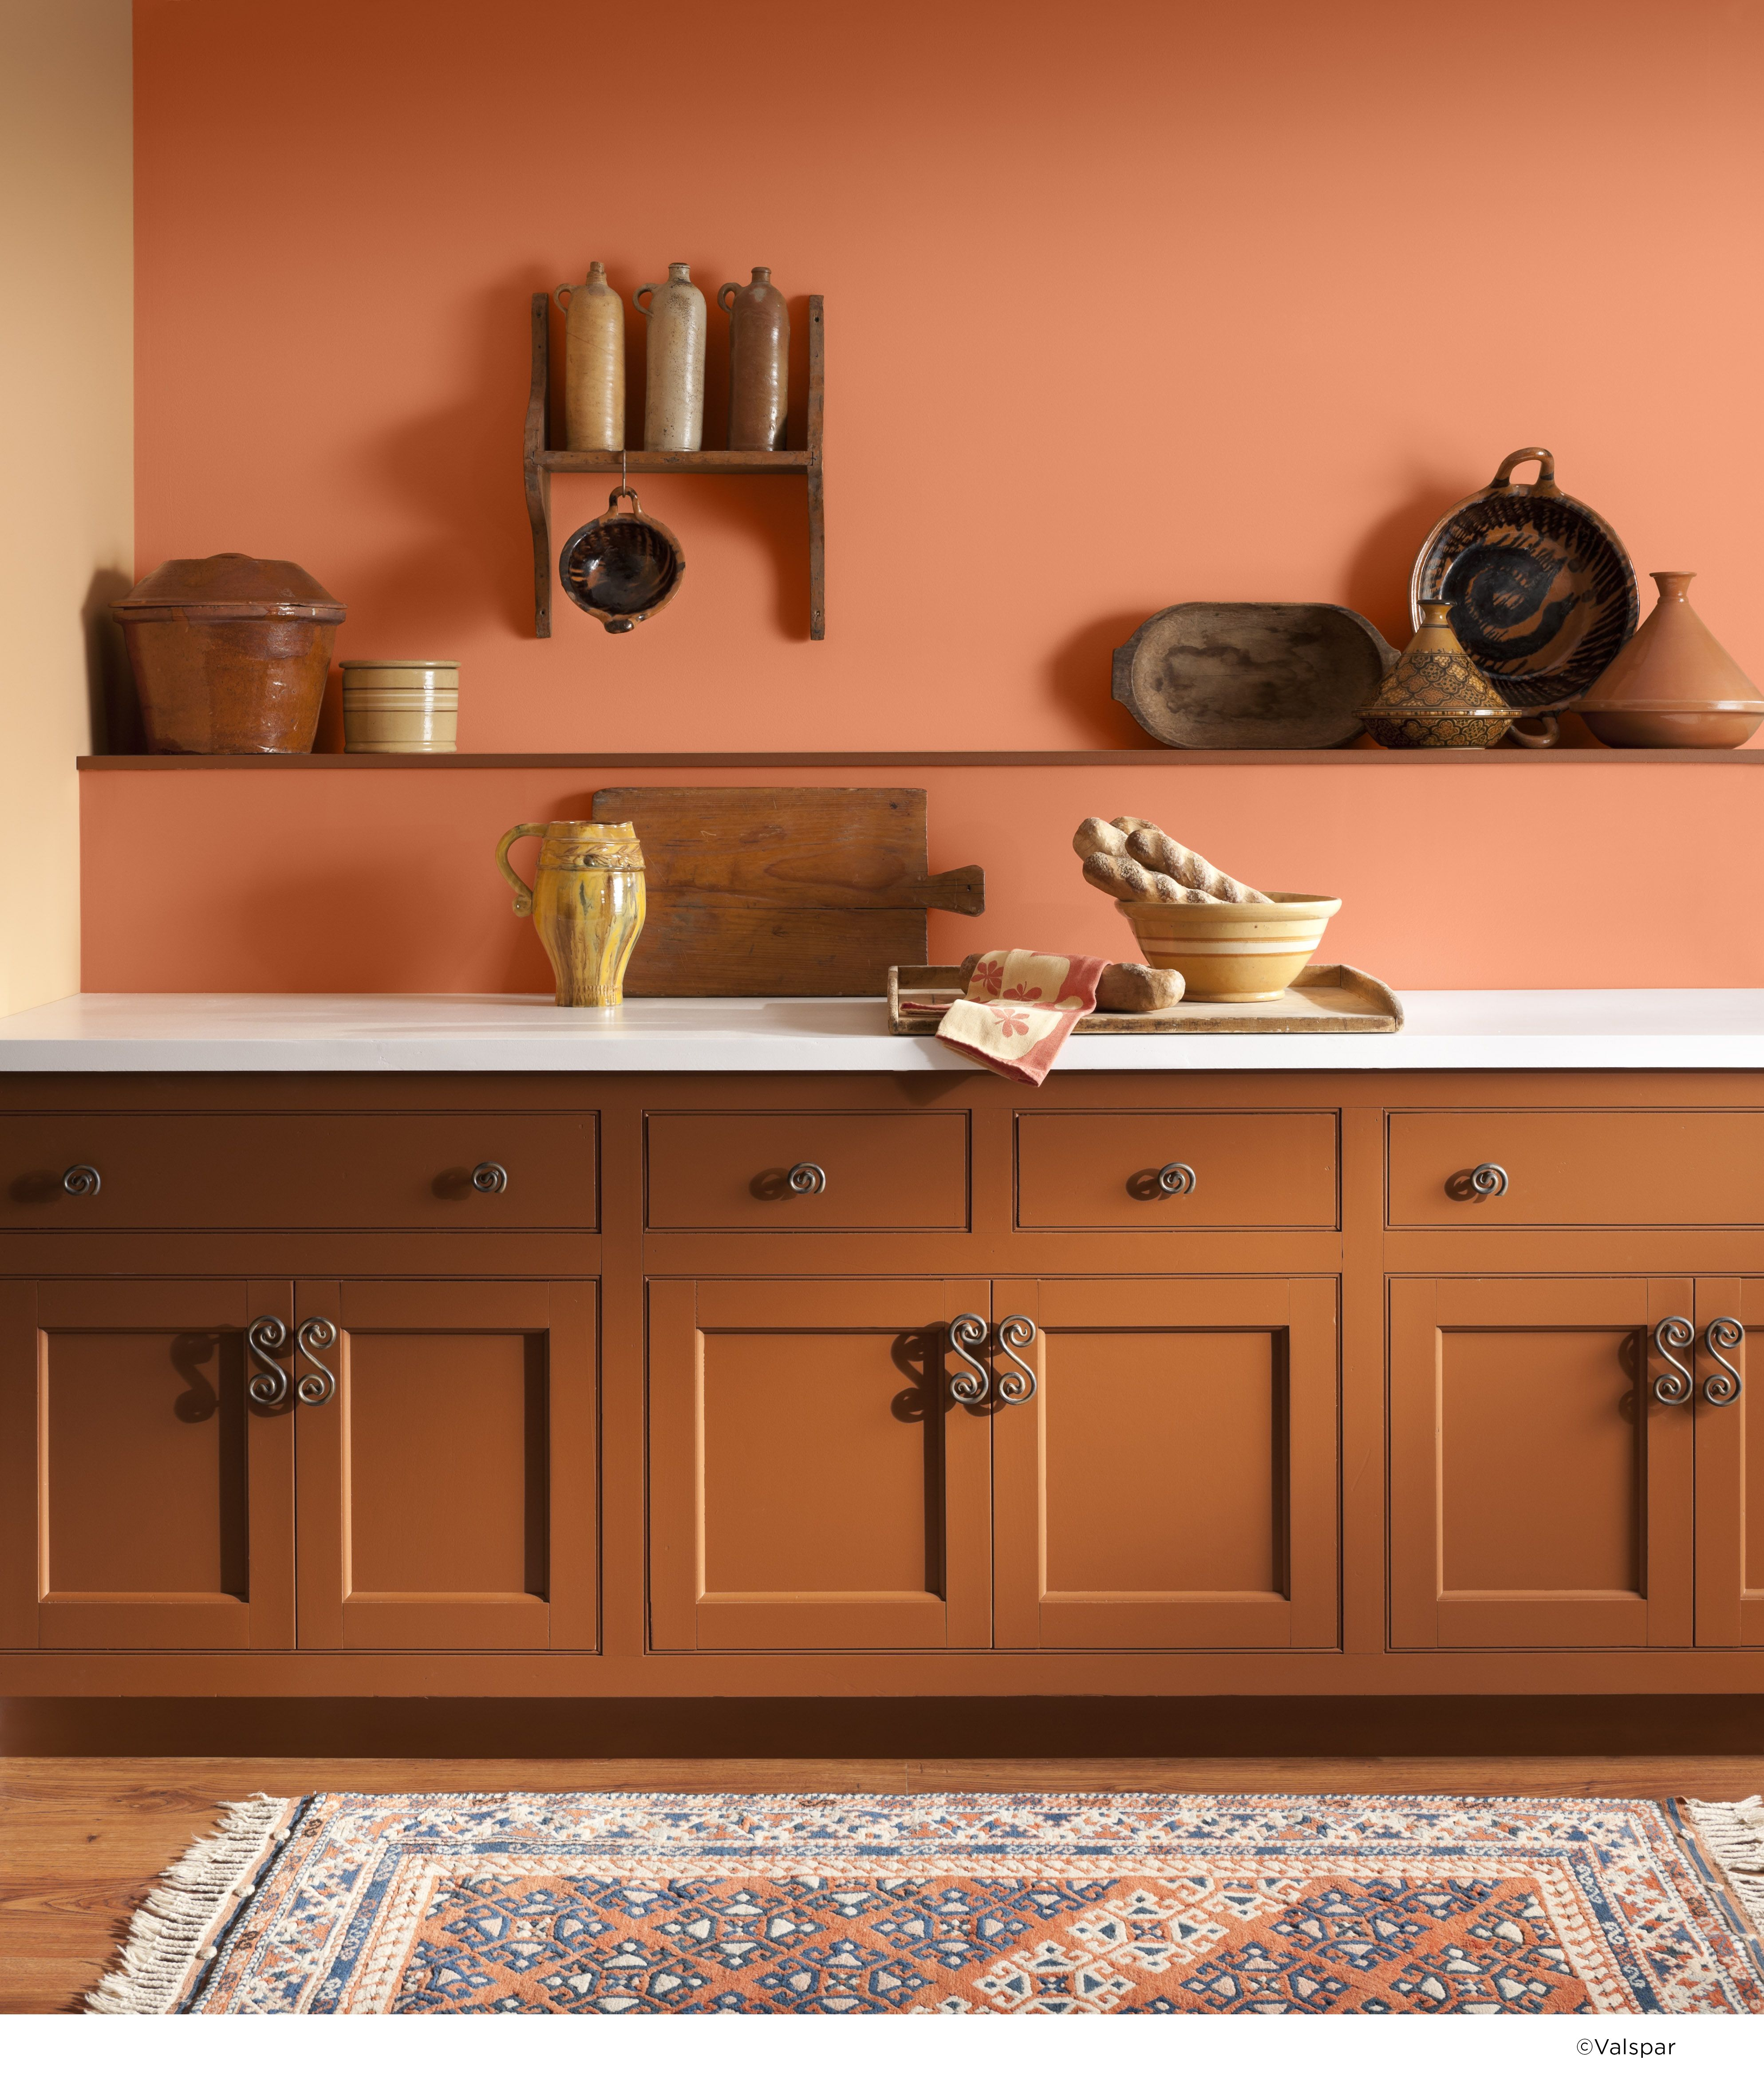 an orange wall can bring extra rustic warmth to any kitchen  color name  valspar toasted apricot an orange wall can bring extra rustic warmth to any kitchen  color      rh   pinterest com